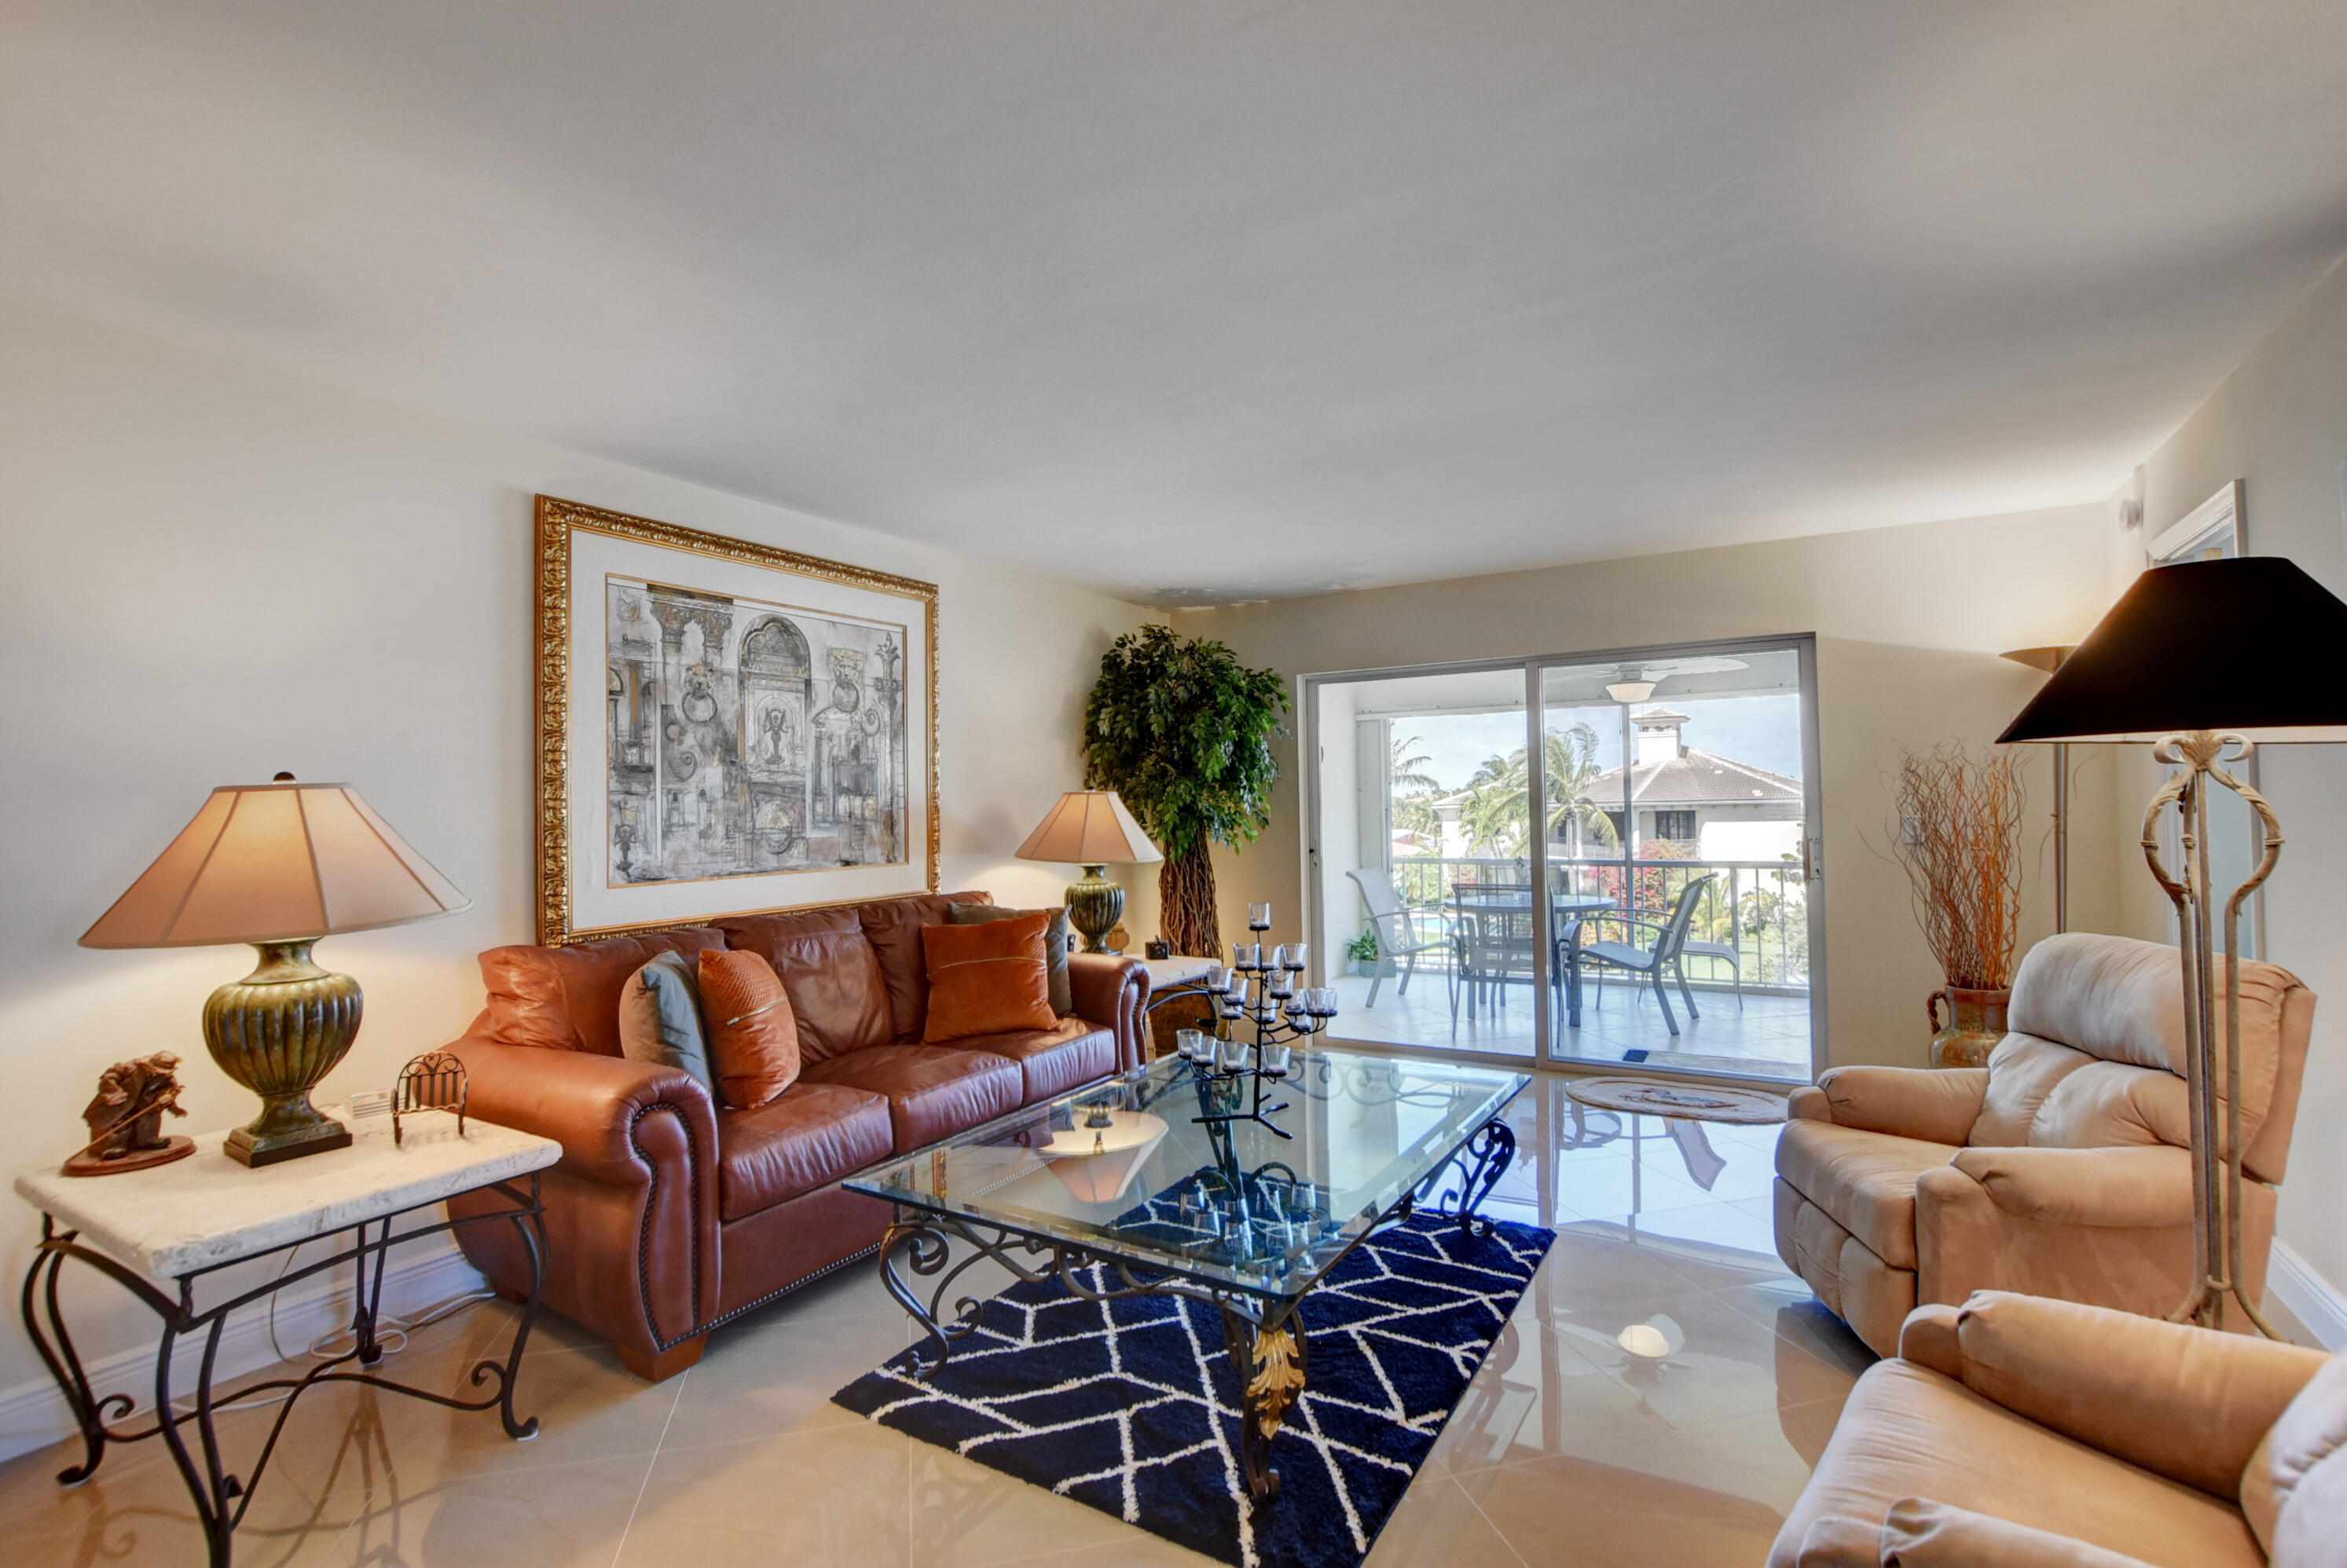 2 LARGE BEDROOMS PLUS A LARGE DEN  OVERLOOKING THE MARINA AND YOUR 25 FOOT BOAT SLIP . ALL PORCELAIN TILE FLOORS,UPGRADED FURNITURE,EAT IN KITCHEN ,WASHER AND DRYER IN UNIT. THIS UNIT IS RENTED UNTIL 9/30/22 @ $ 2600.00 PER MONTH WITH A $ 22,300.00 NET PROFITOLYMPIC SIZE POOL ,CLUBHOUSE,TENNIS ,BBQ AREA, SCUFFLE BOARD,STEPS TO BEACH AND POOL. 55 AND OVER VERY SOCIAL COMPLEX. OWNER WILL FINANCE